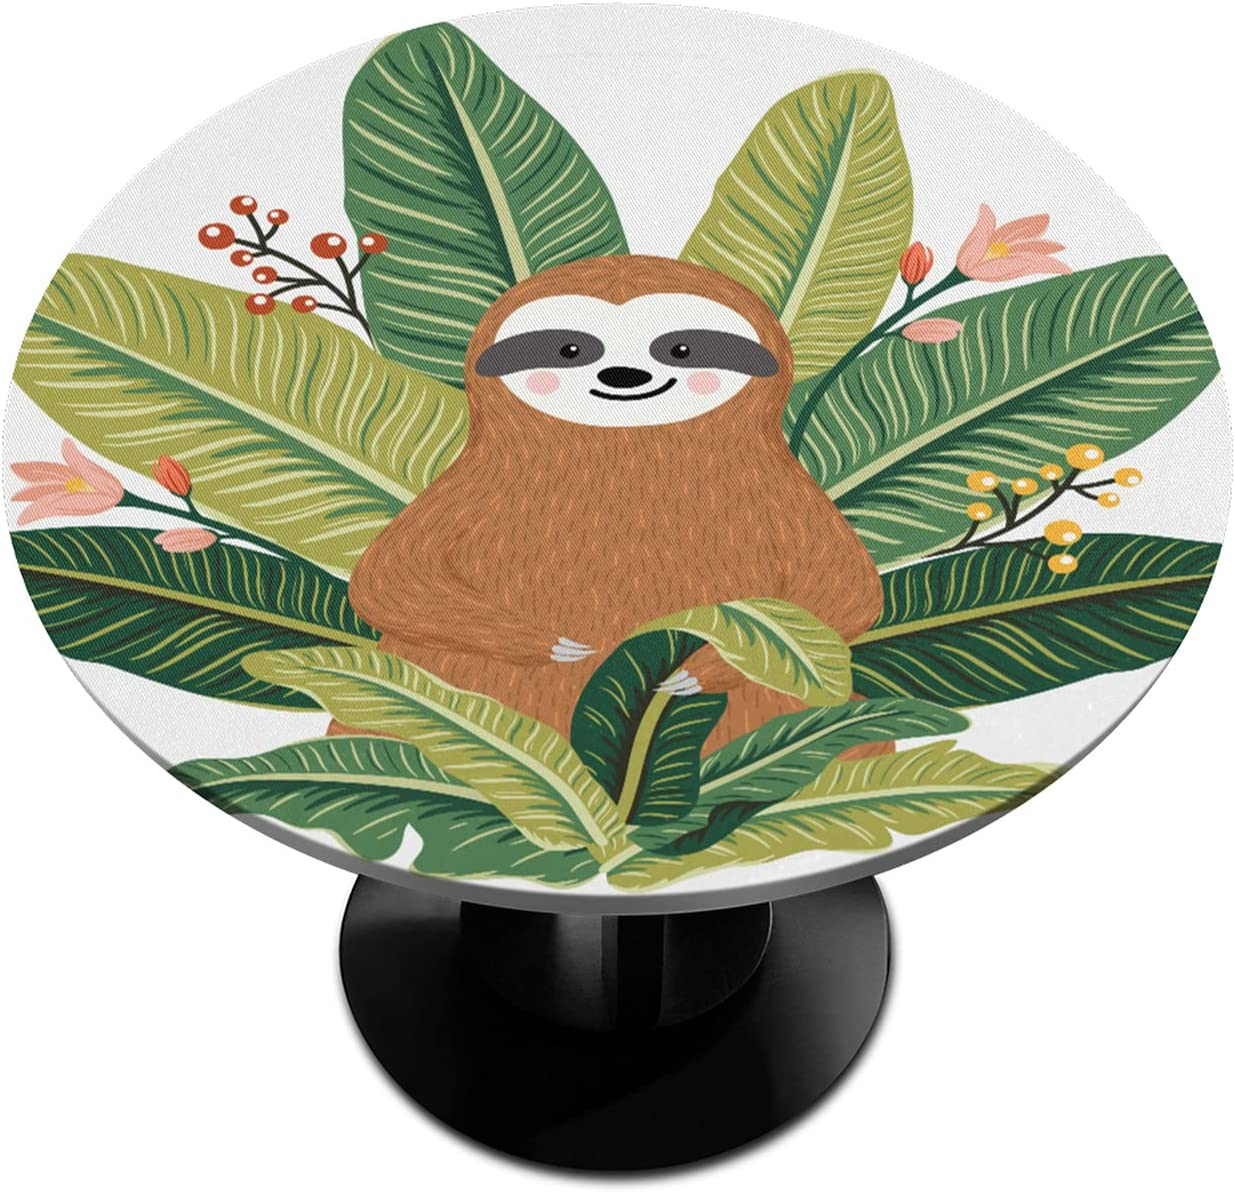 BOLOLI Max 76% OFF Outlet sale feature Baby Sloth Elastic Edged Fitted Round Tablecloth L Banana